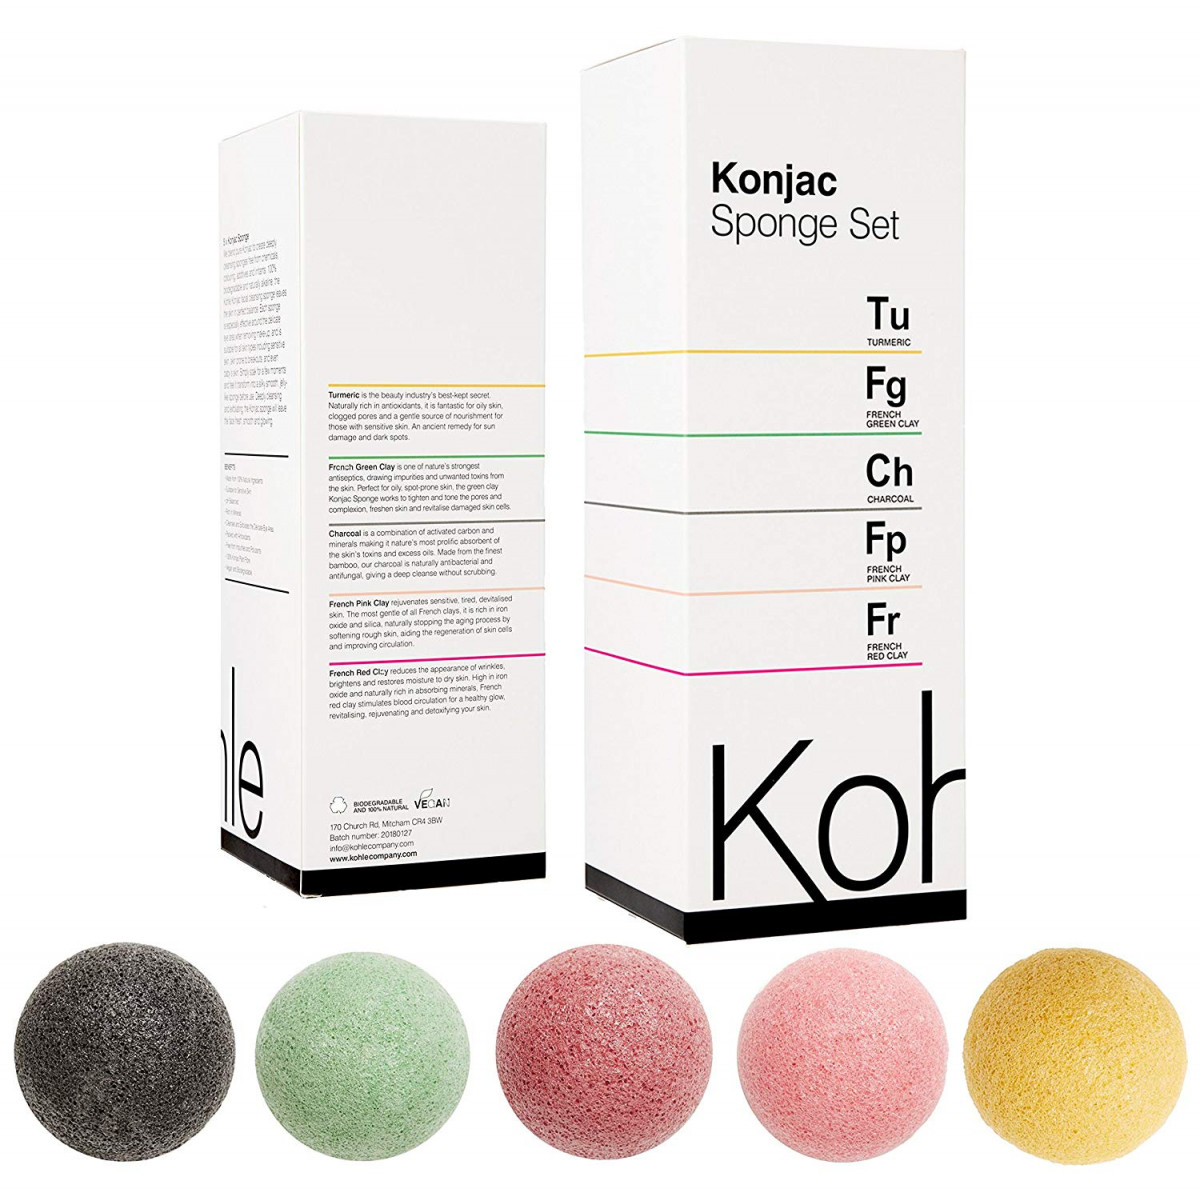 Konjac Sponge Set 5 Pack Organic Skincare Face And